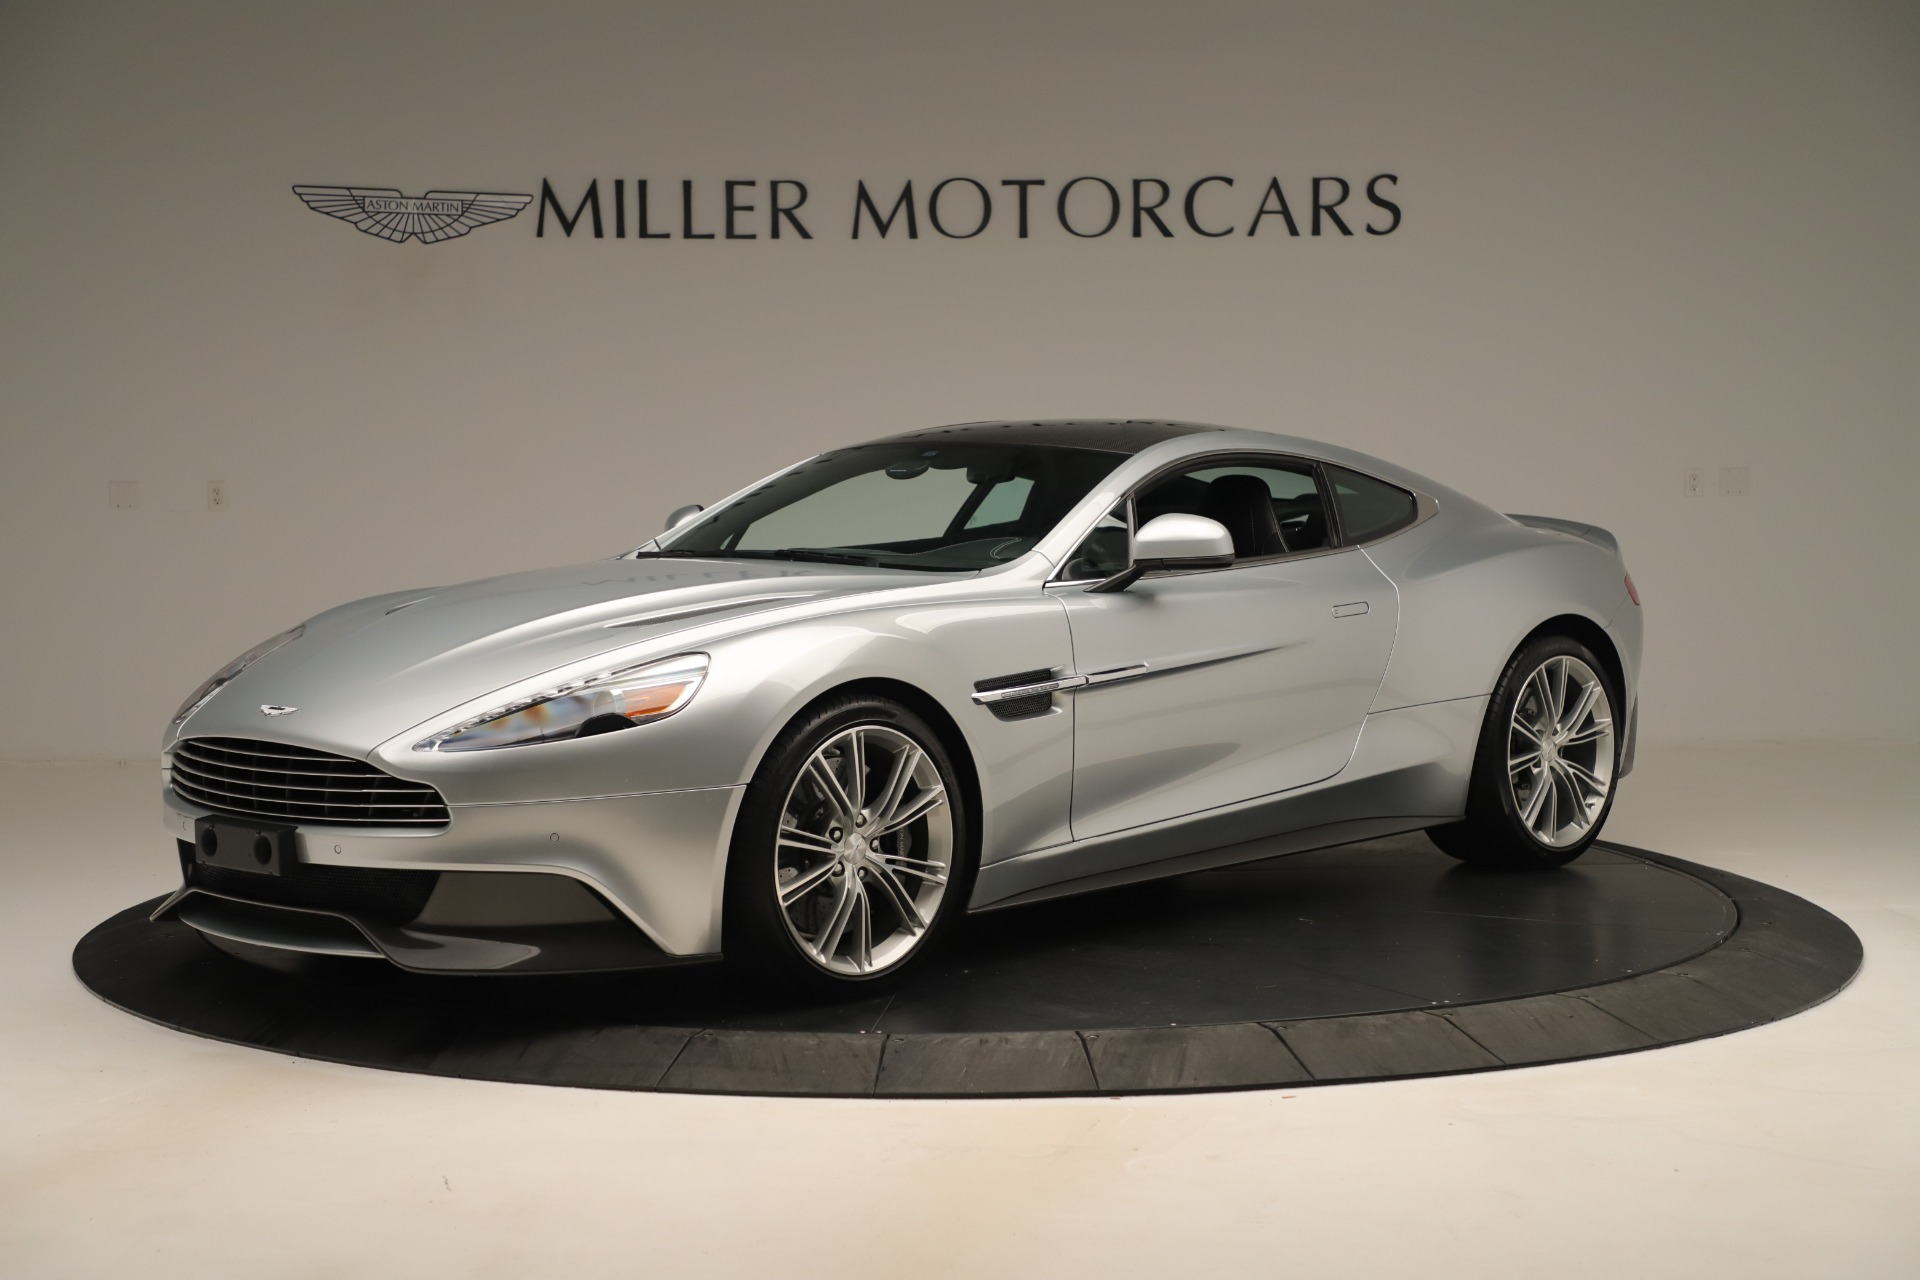 Used 2014 Aston Martin Vanquish Coupe for sale $116,900 at Maserati of Greenwich in Greenwich CT 06830 1